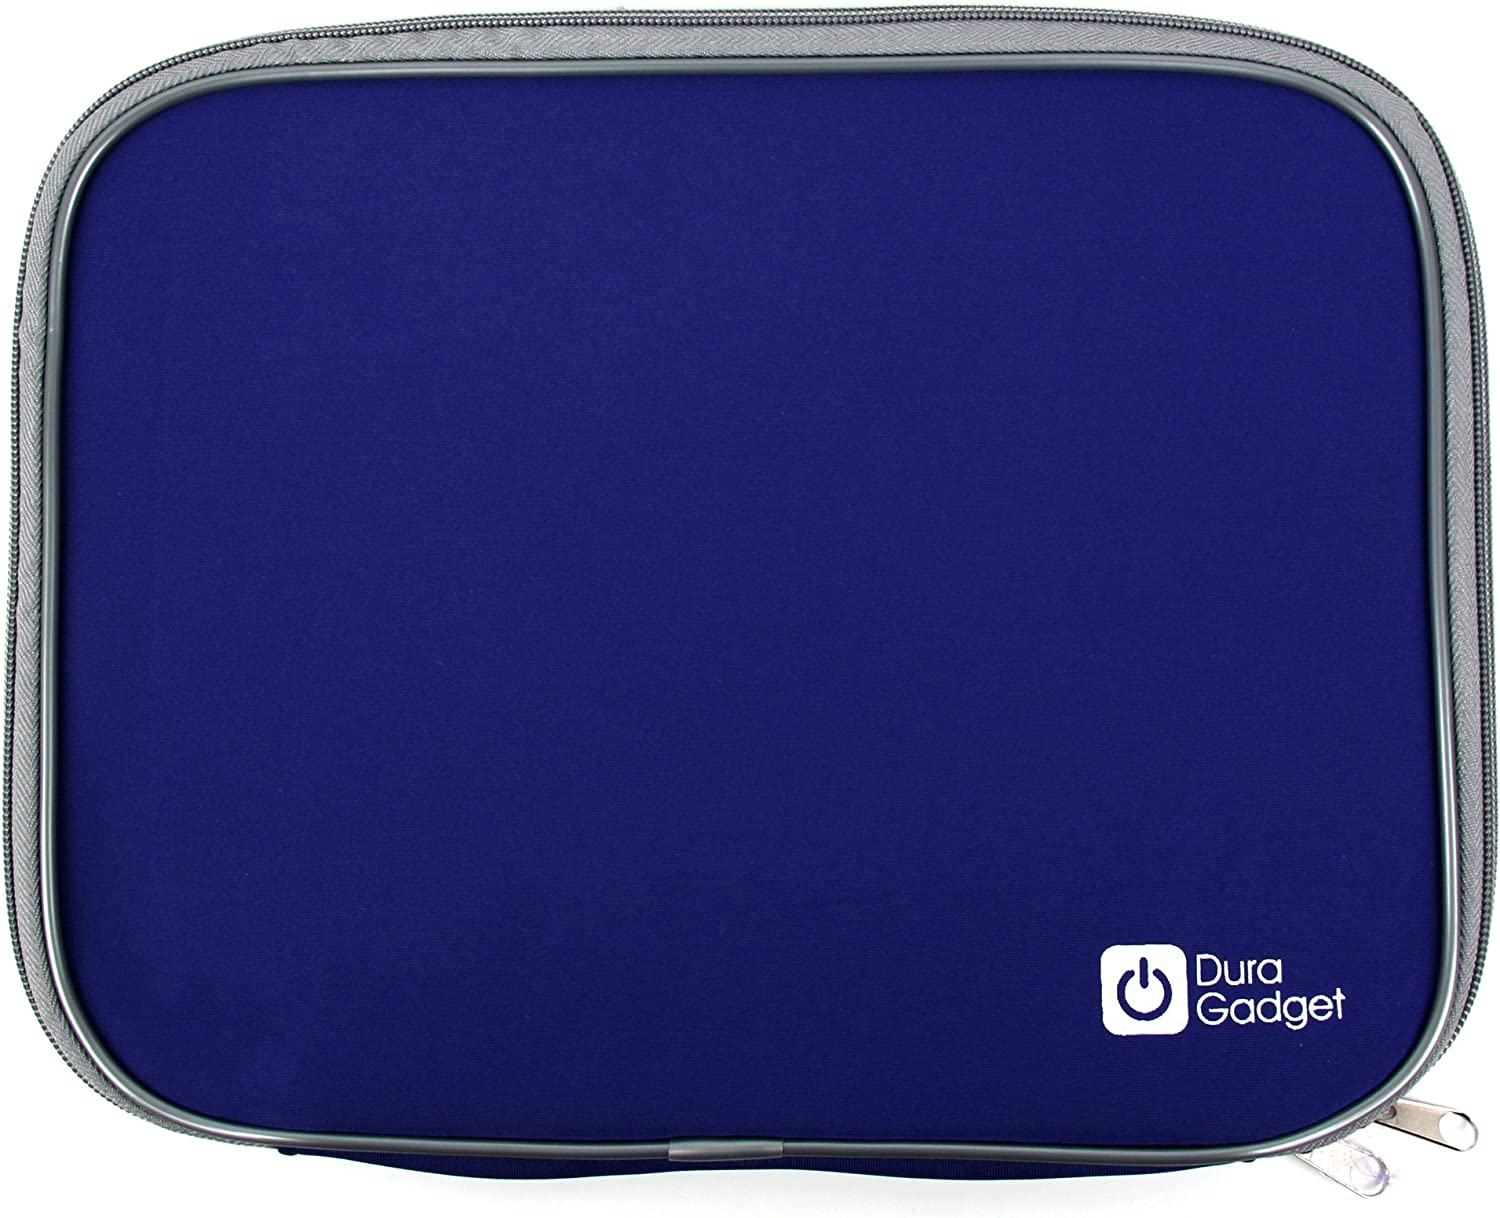 DURAGADGET Protective Splash Resistant Blue Neoprene Laptop Case for Acer AC710 C7 Chromebook (11.6 Inch, Intel Celeron 847 1.1GHz, Chrome OS) & Compaq Mini CQ10-700